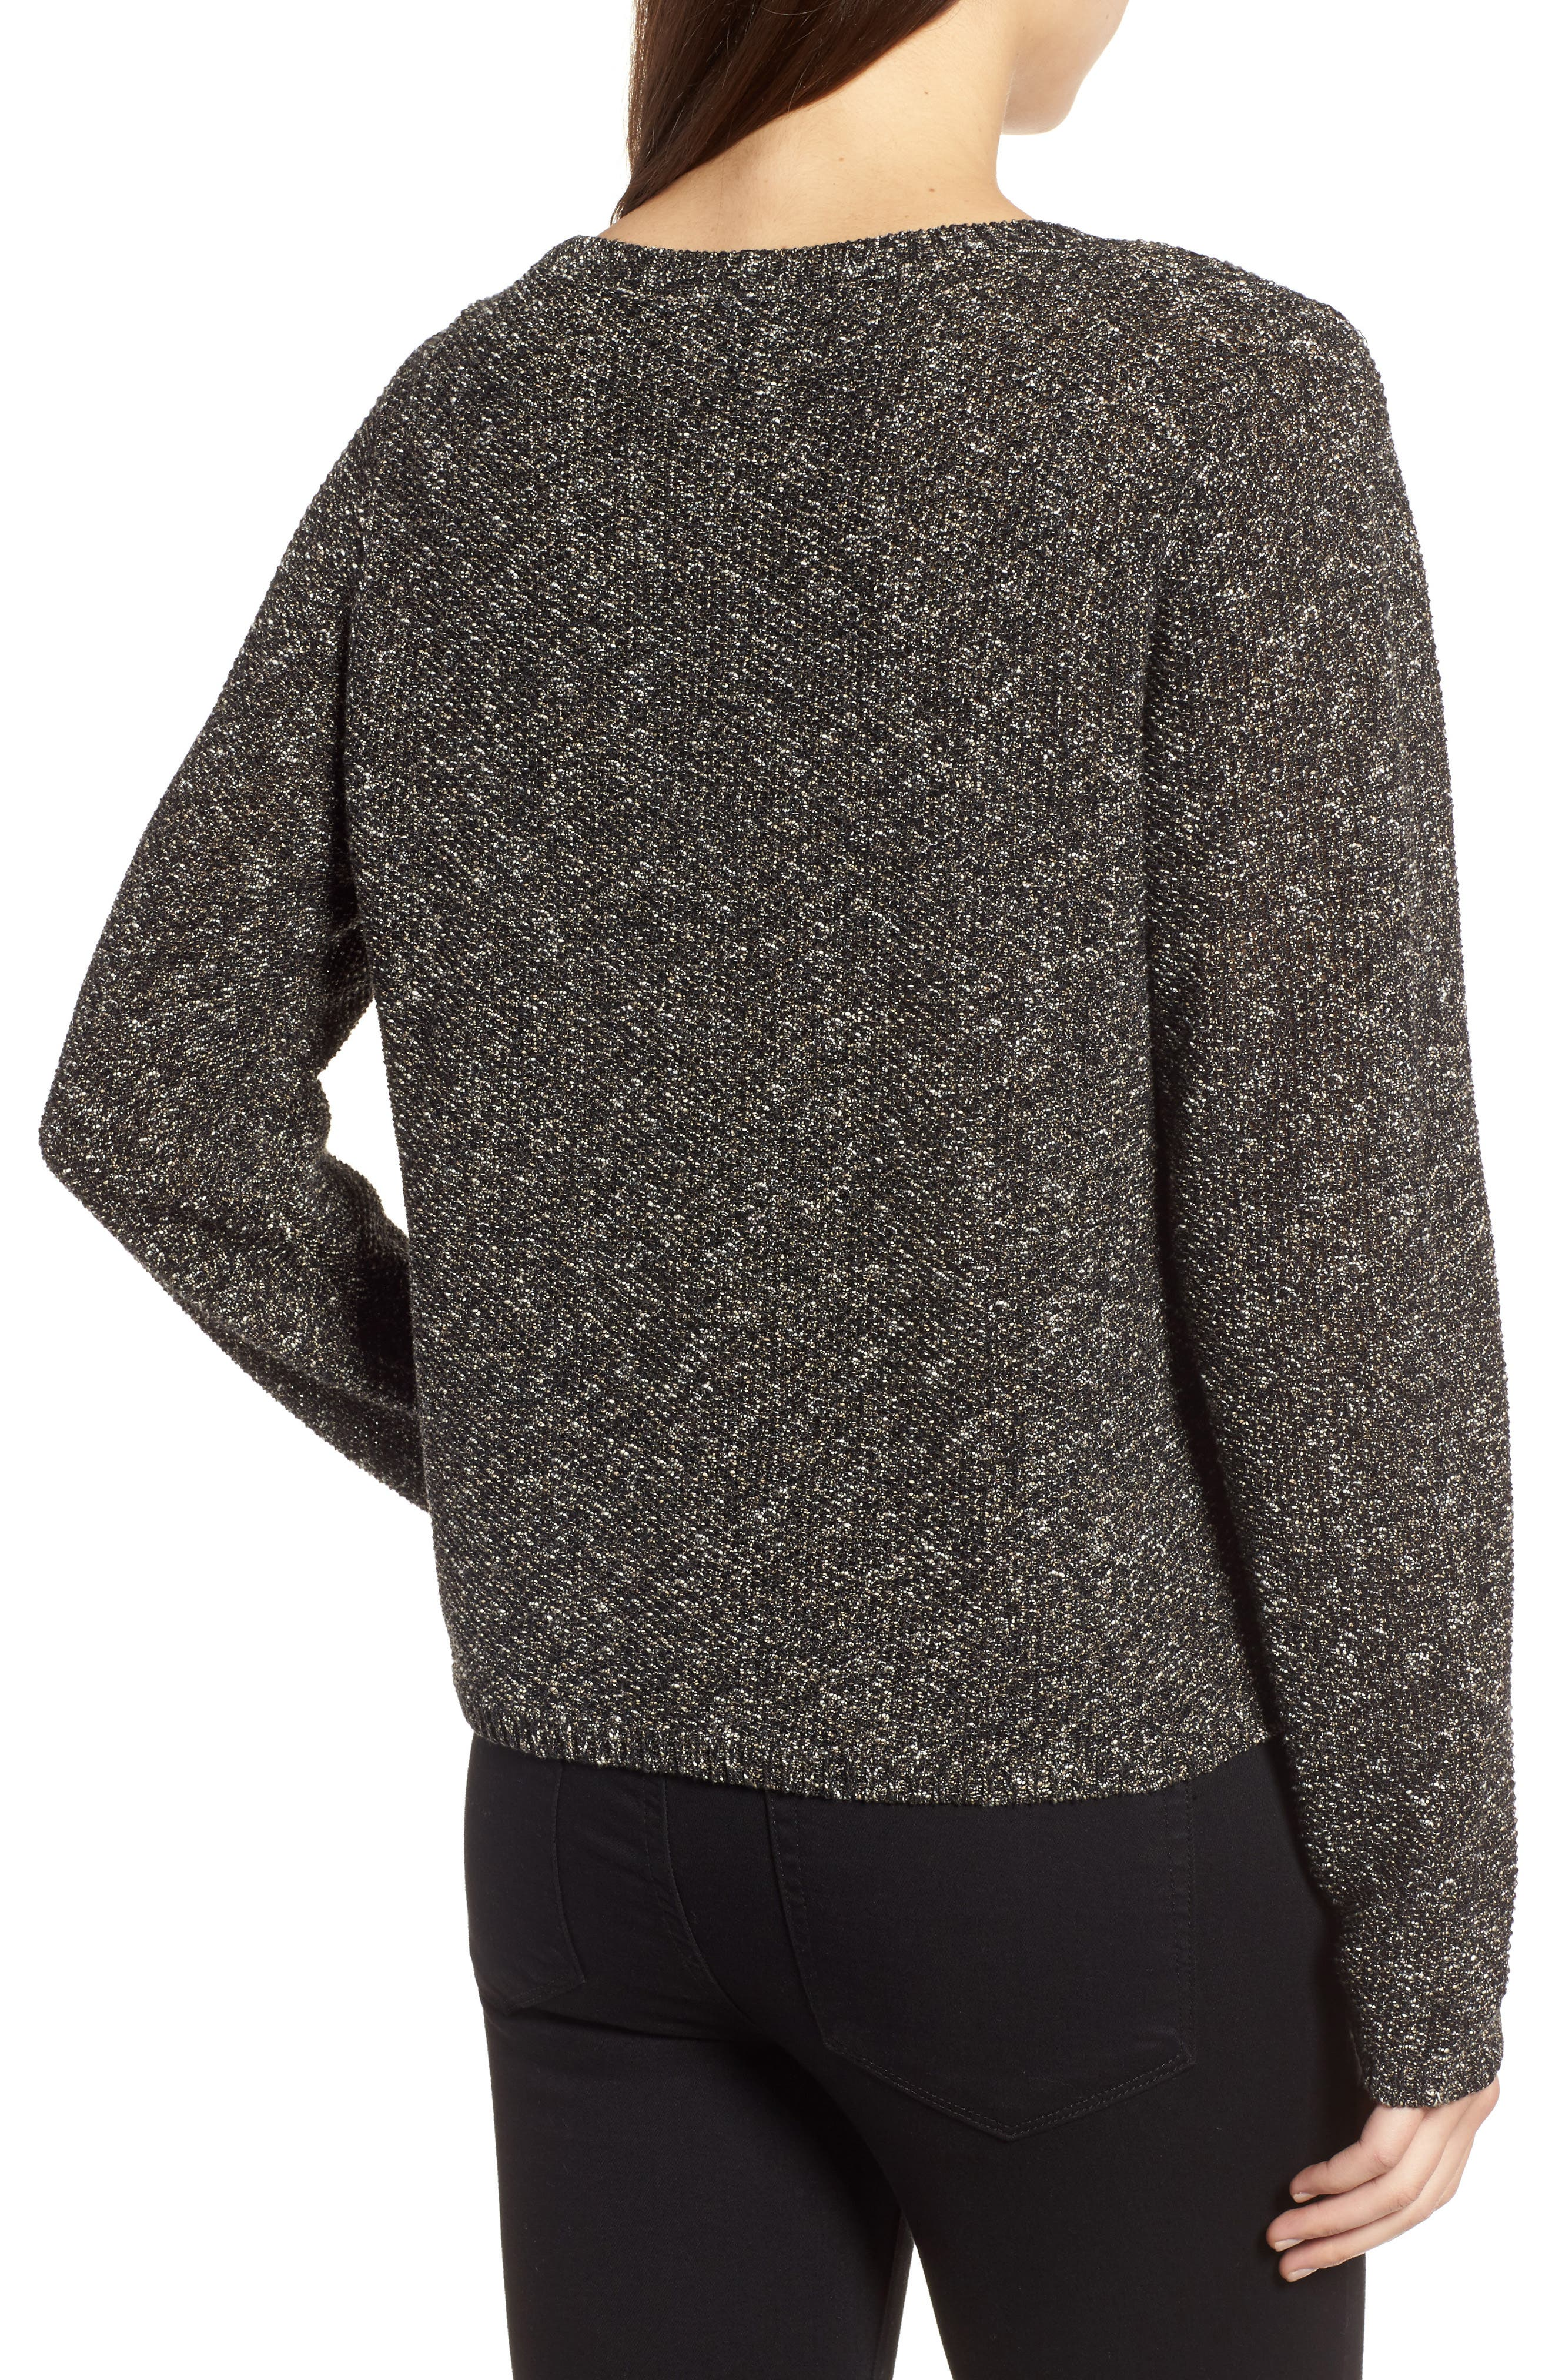 Tweed Knit Sweater,                             Alternate thumbnail 2, color,                             Black